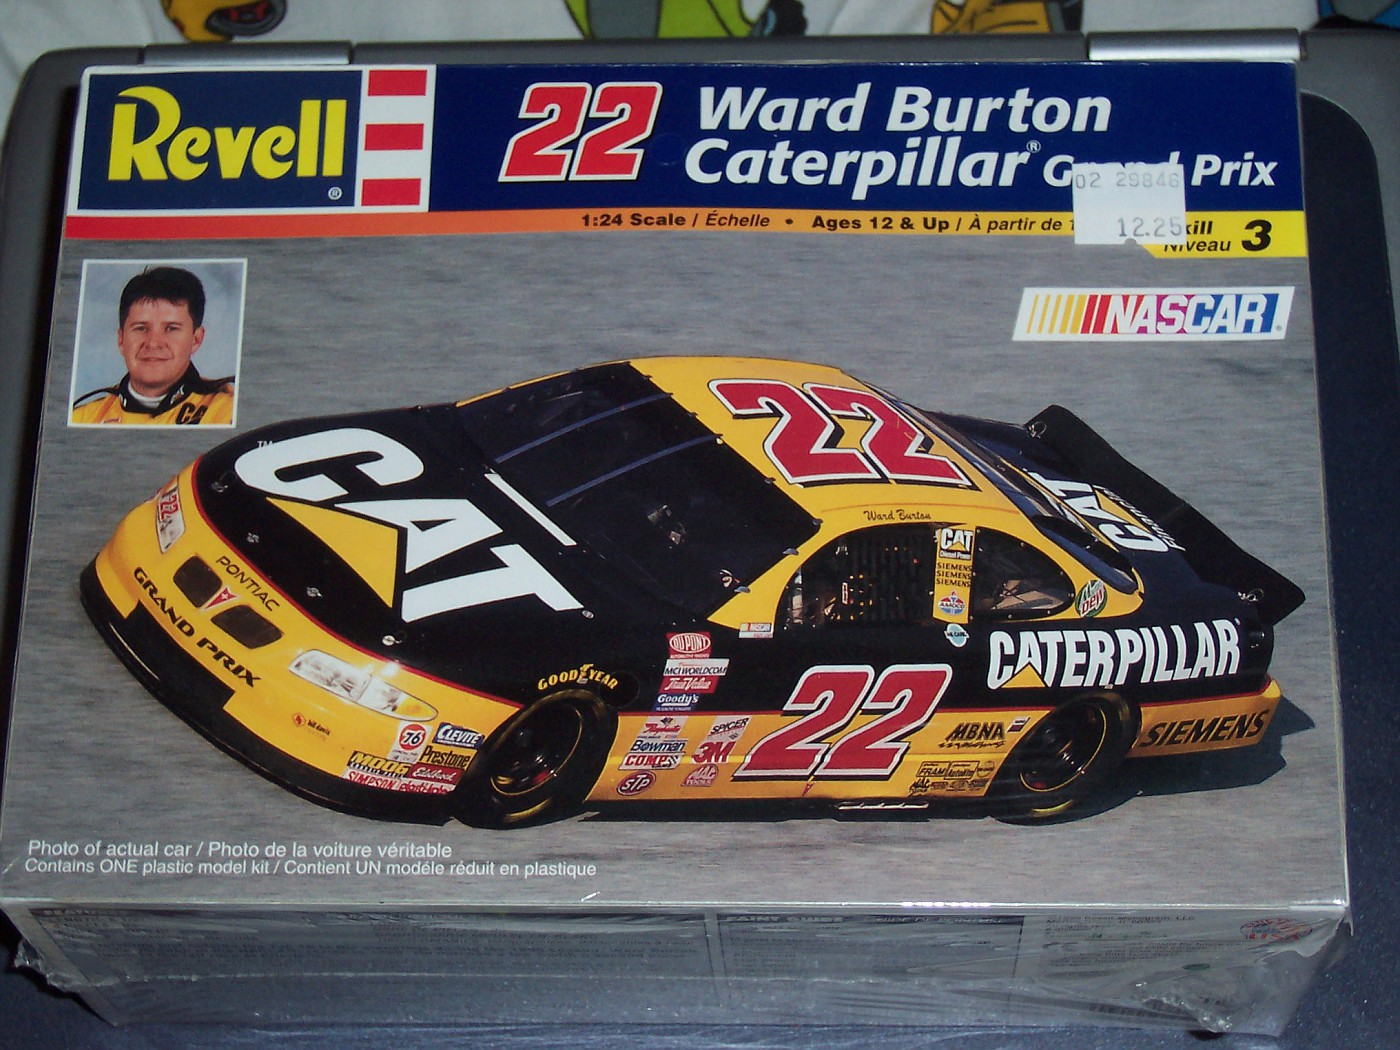 1999 Ward Burton Caterpillar Pontiac Grand Prix